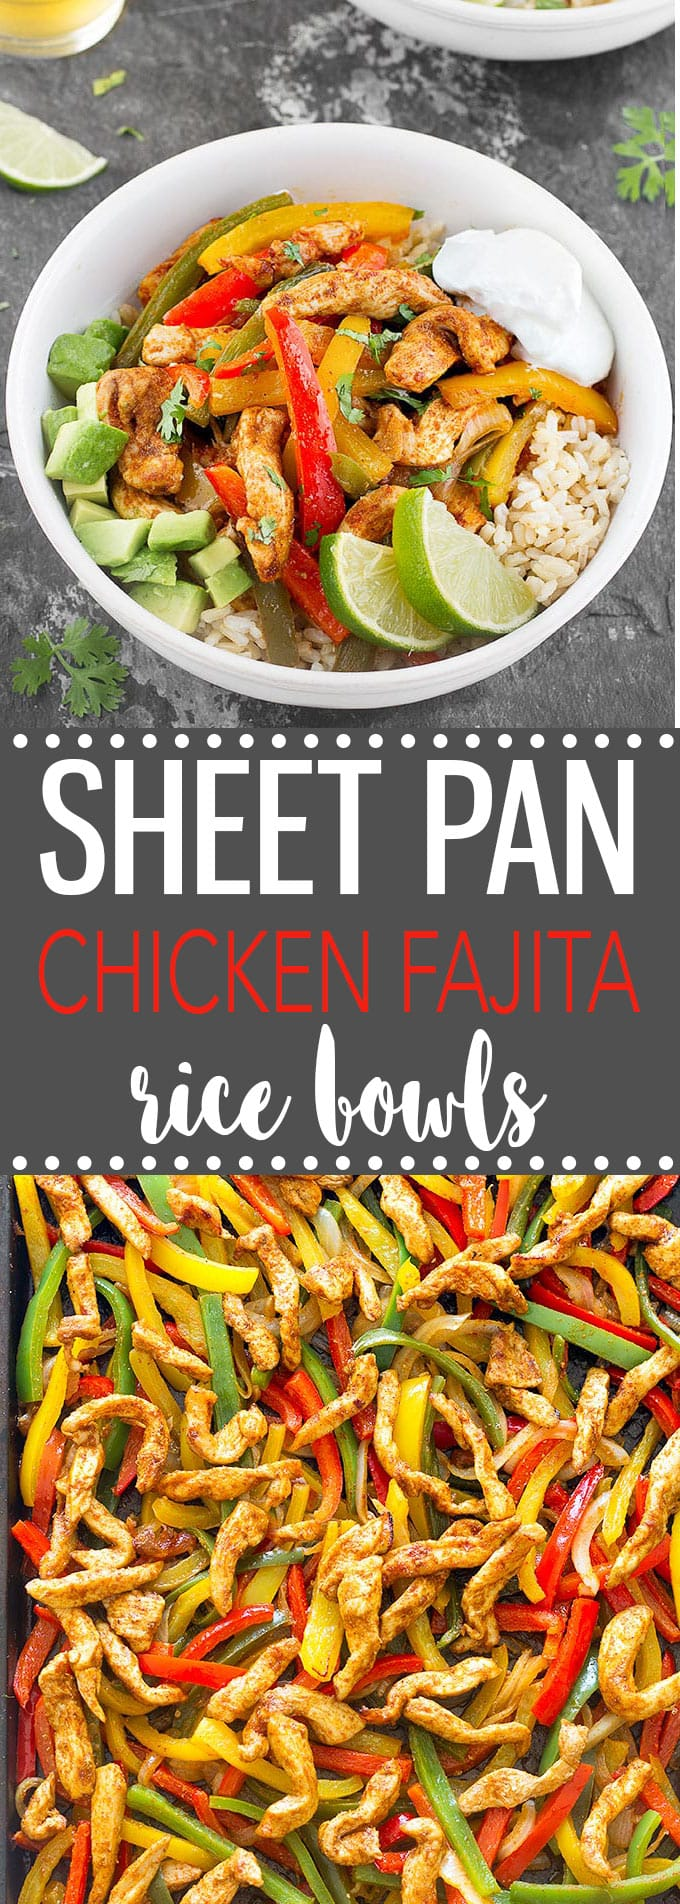 Sheet Pan Chicken Fajita Rice Bowls- A quick, easy and mouthwatering weeknight dinner that makes great leftovers! #weeknightdinner #dinner #mealprep #chickendinner #easyrecipes #fajita #bowls